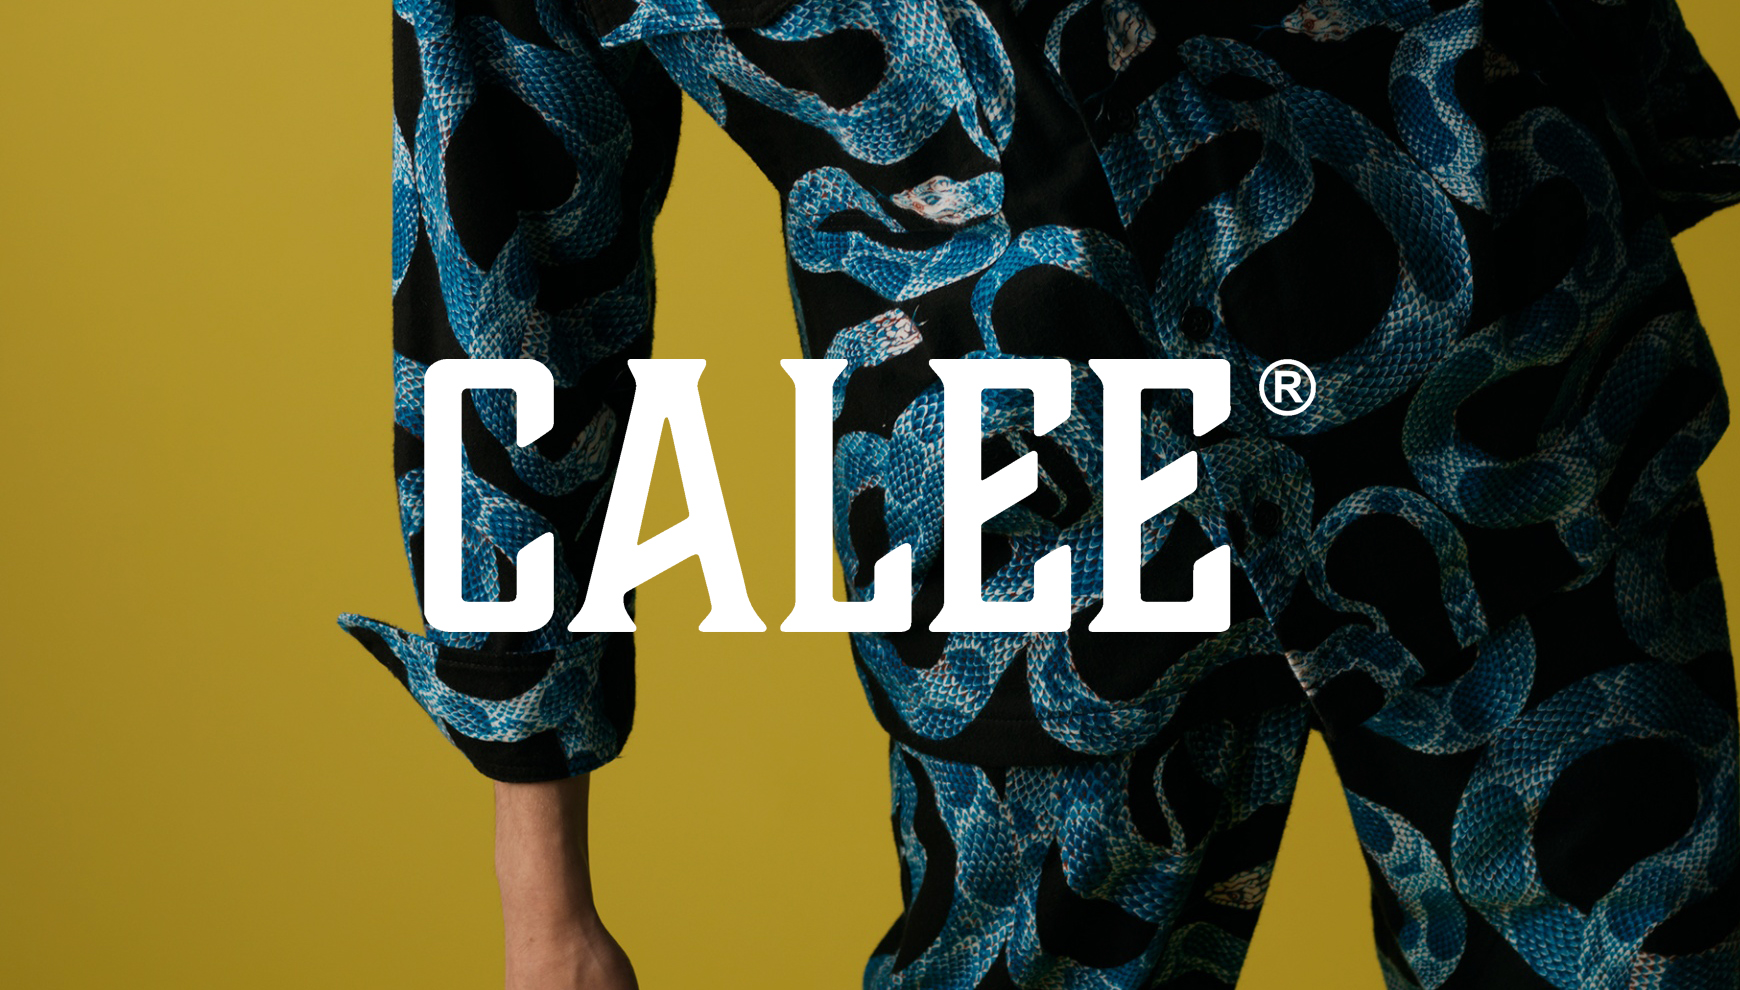 CALEE (キャリー)